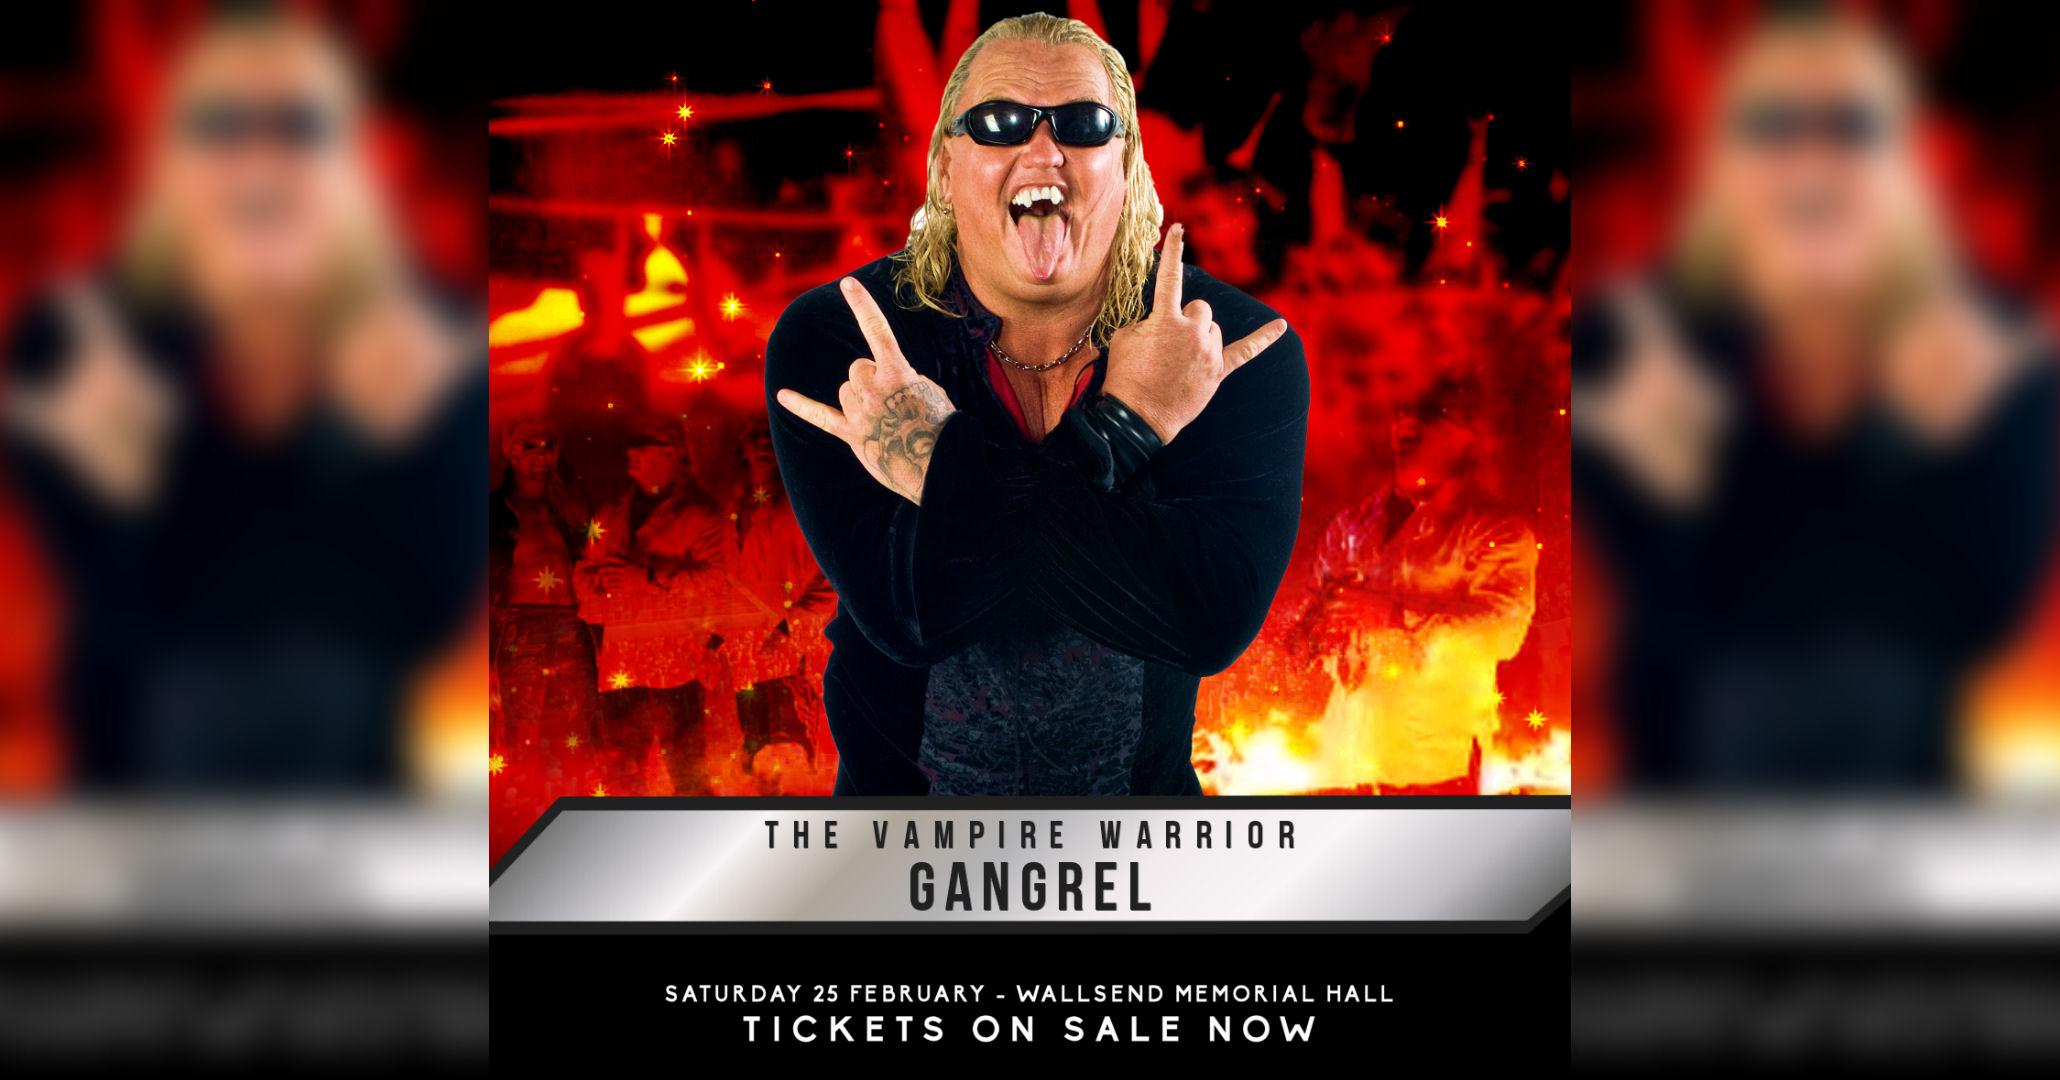 Wrestling in Wallsend featuring GANGREL